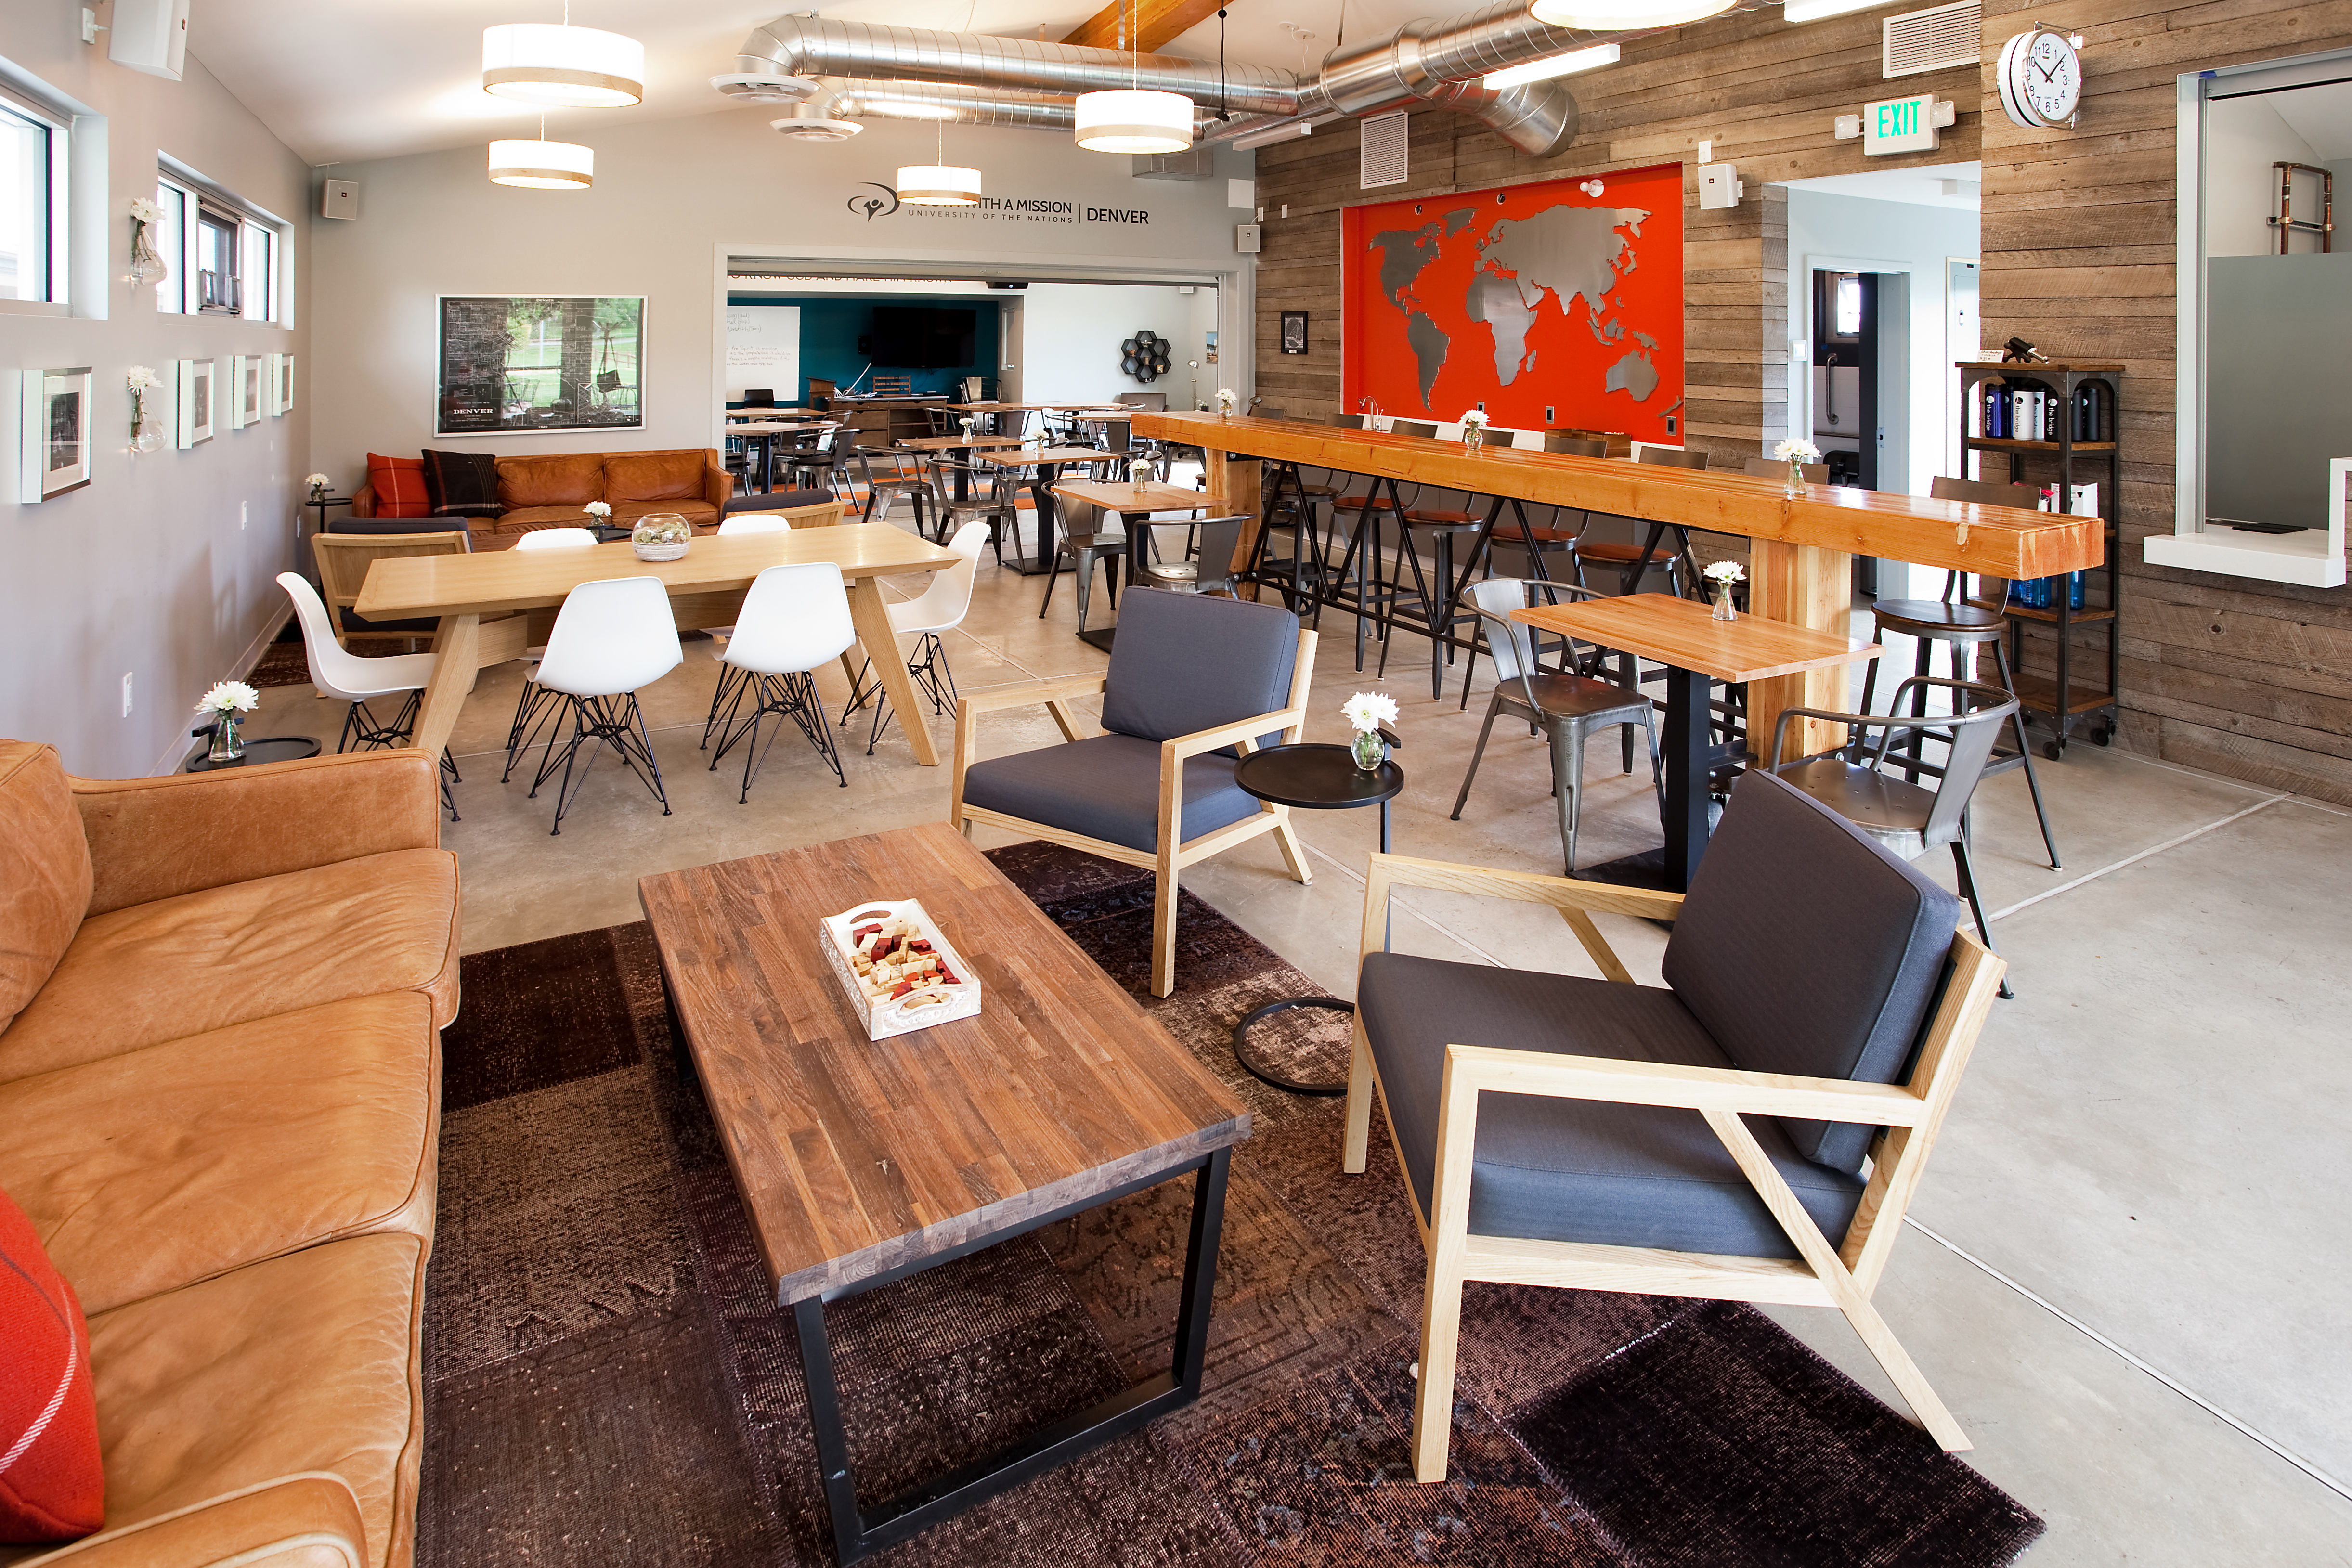 Youth With A Mission (YWAM) Cafe and Lounge